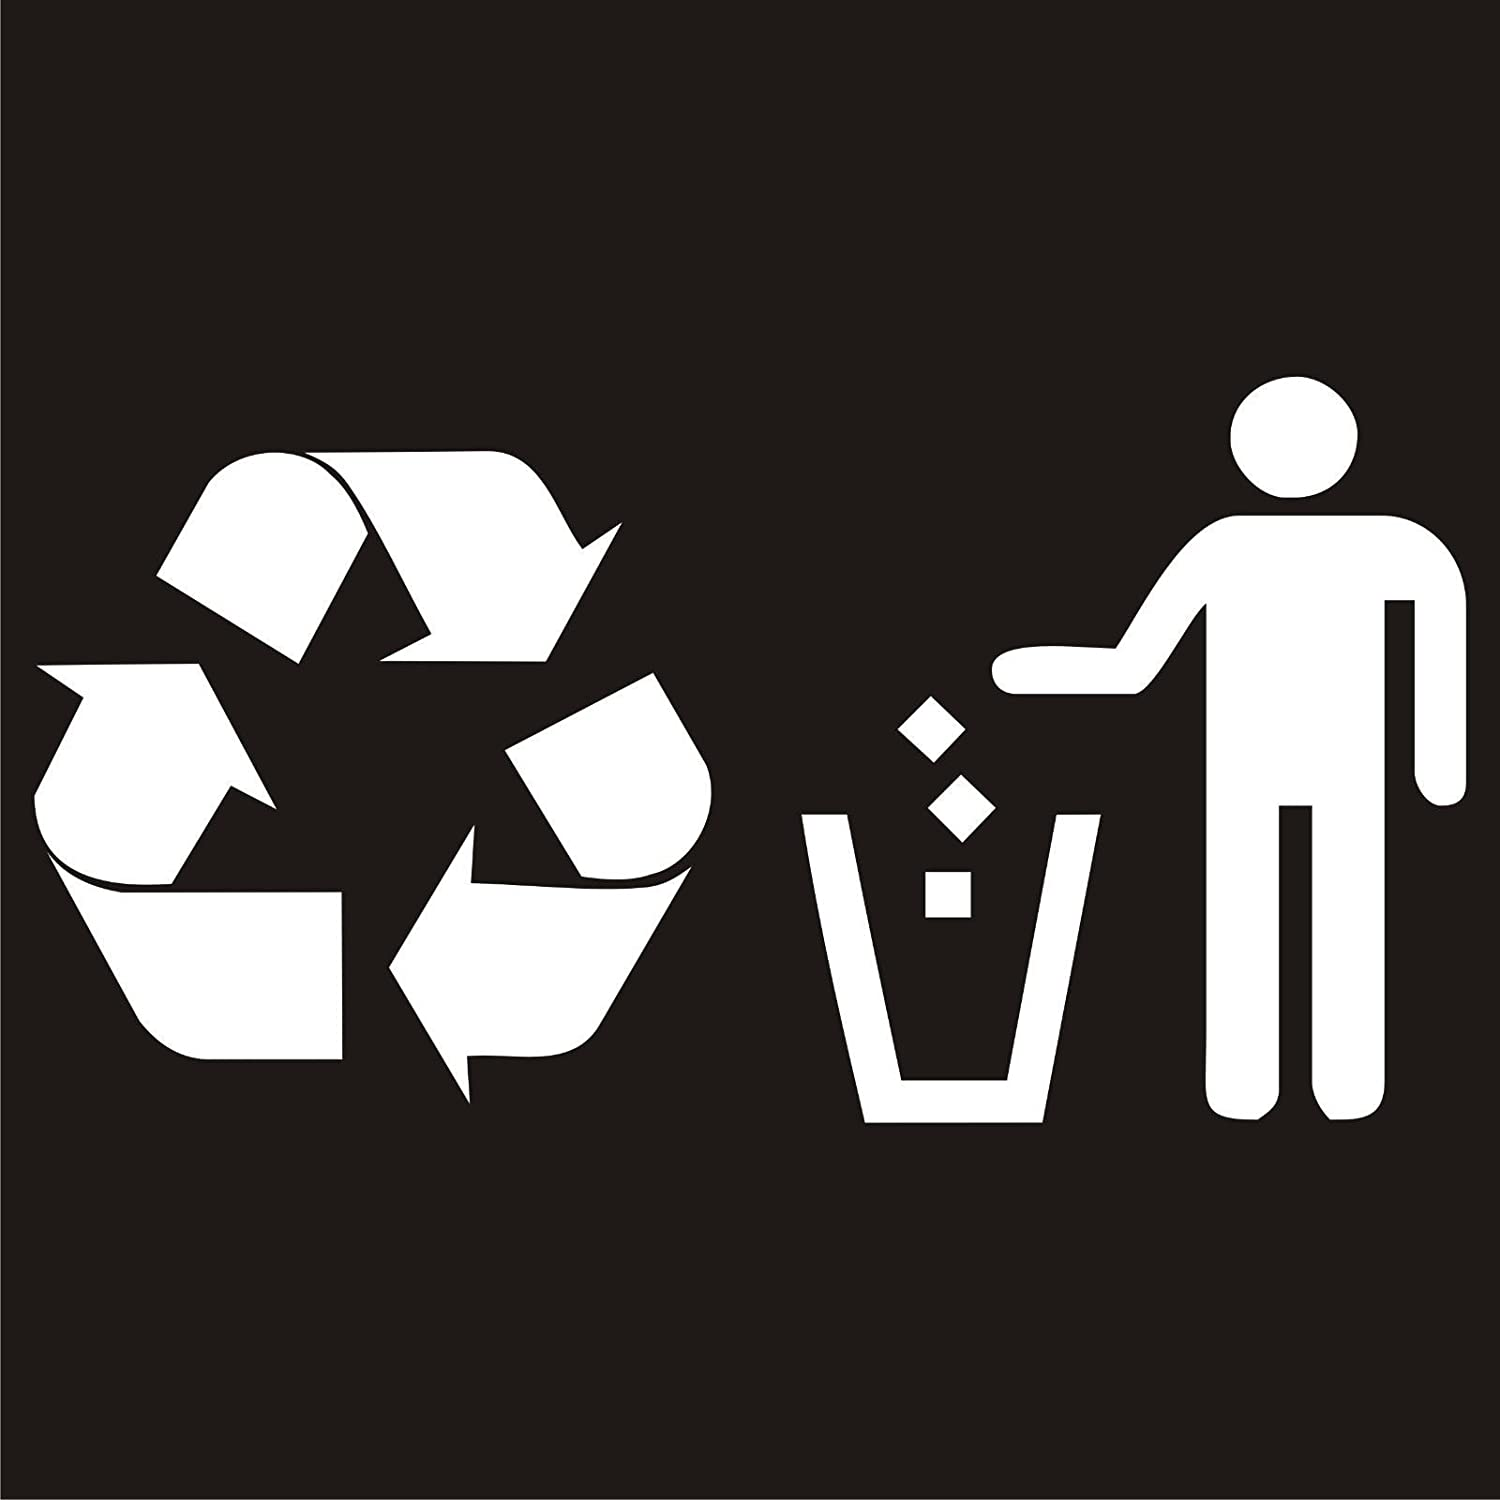 Trash Bag Outline Icon Li Style Sign For Mobile And Design Recycling